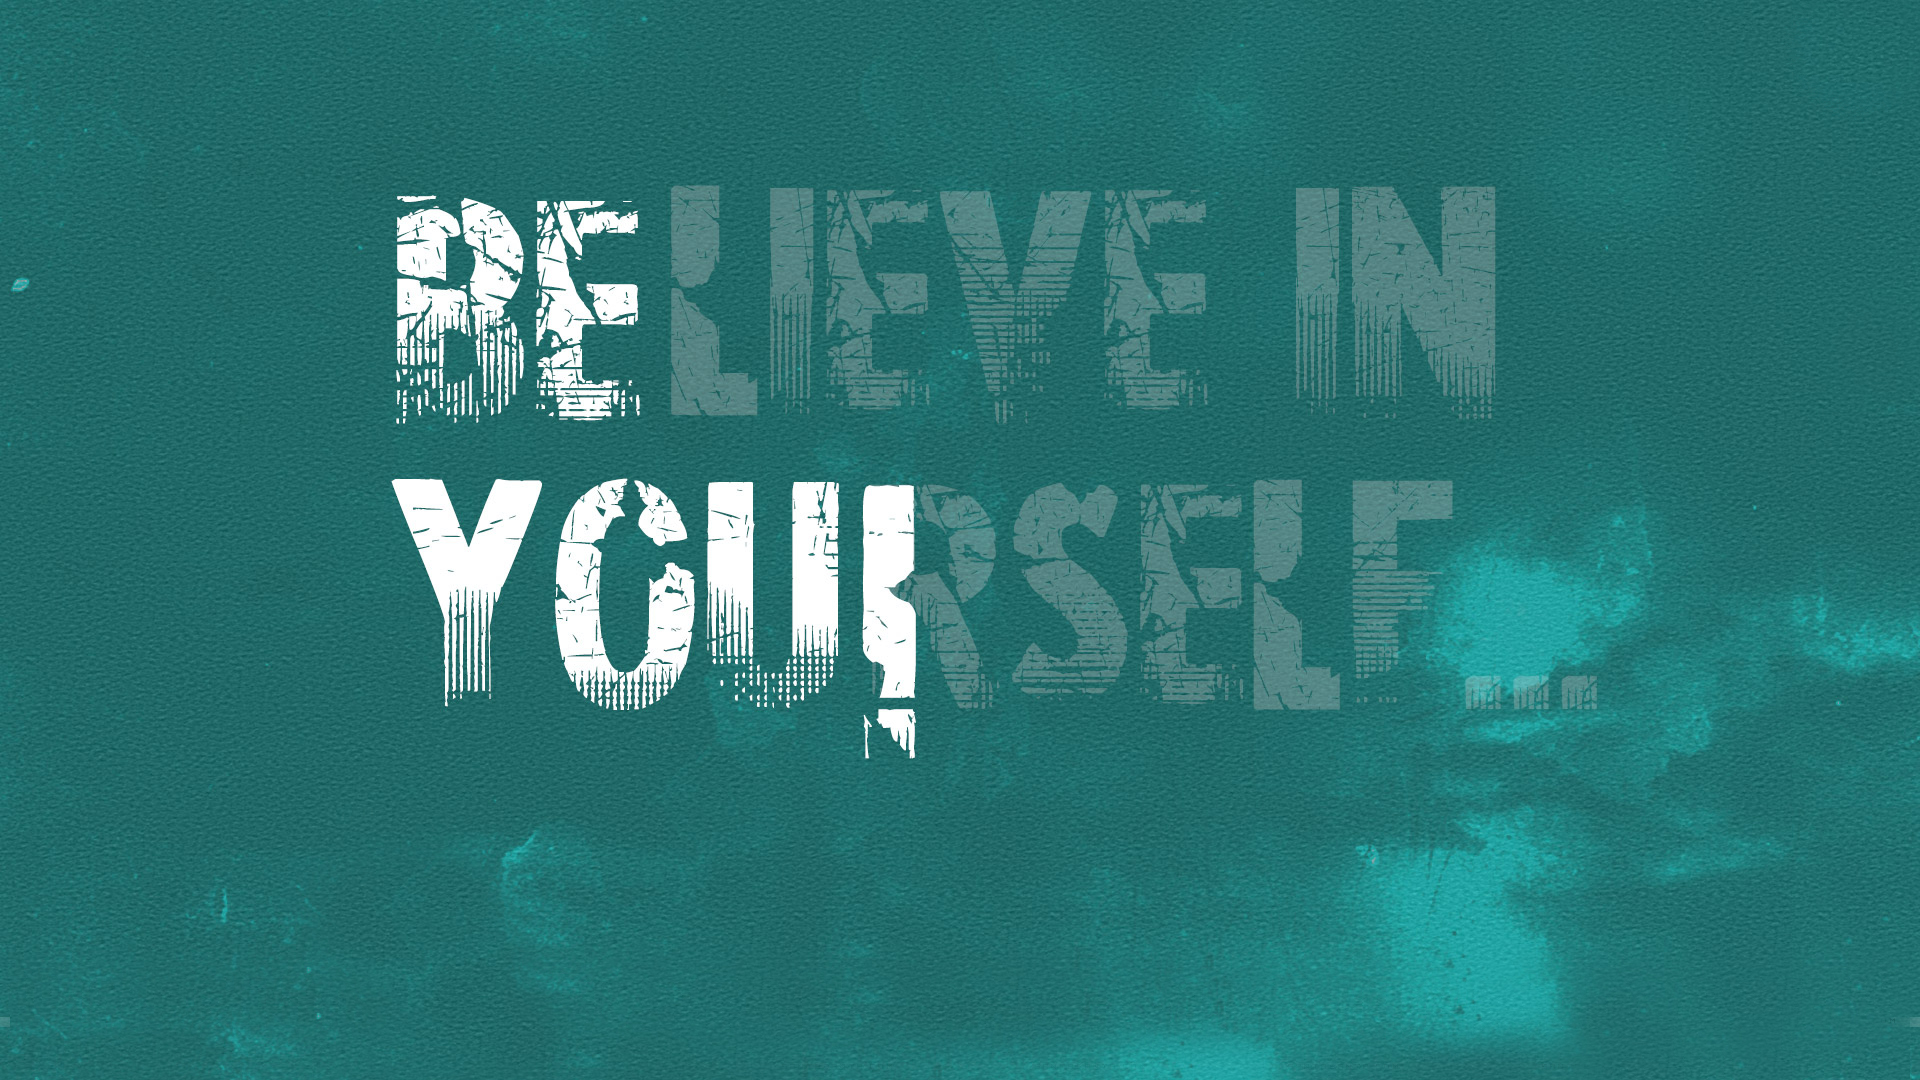 Believe Love Wallpaper Quotes : motivational wallpaper believe in you - HD Desktop Wallpapers 4k HD